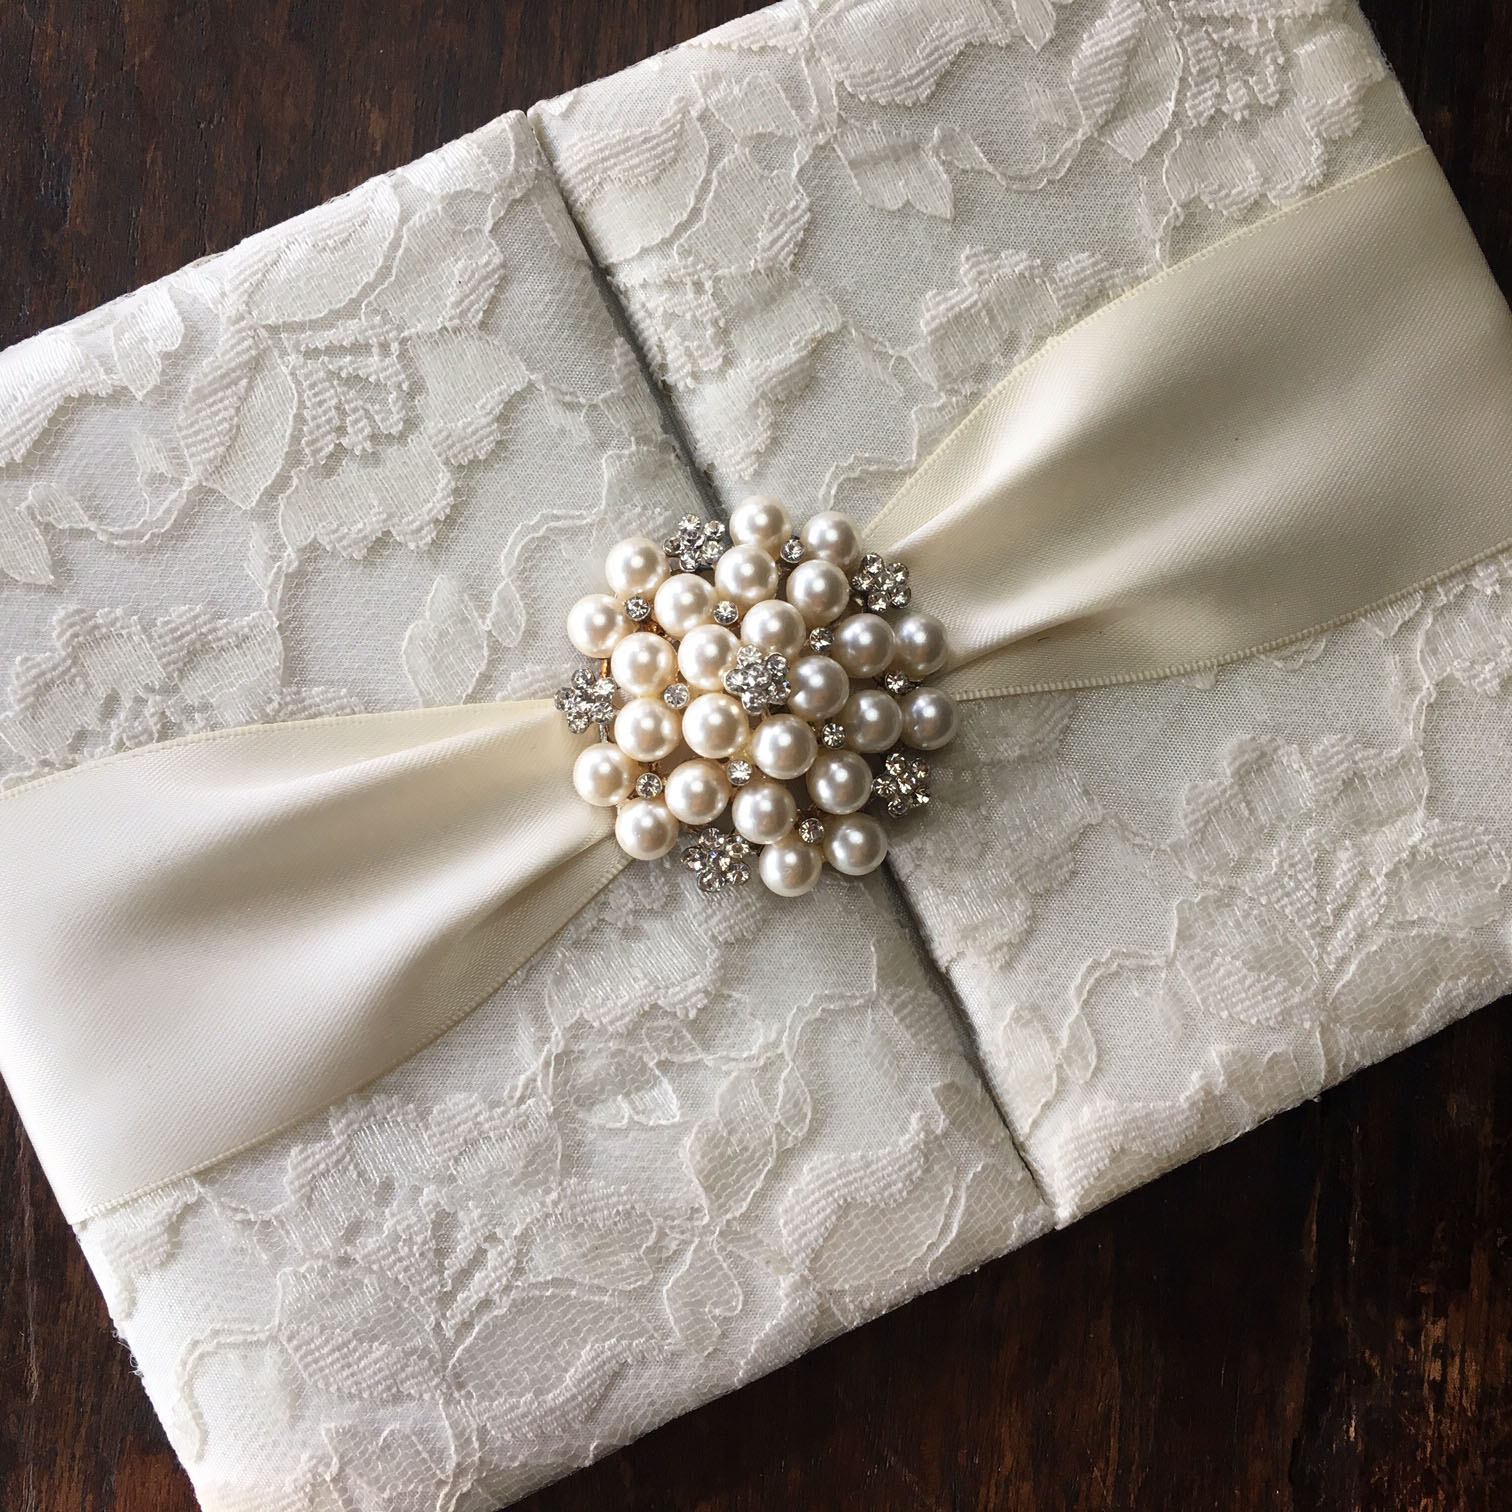 lace wedding invitations with pearl brooch and ivory lace fabric